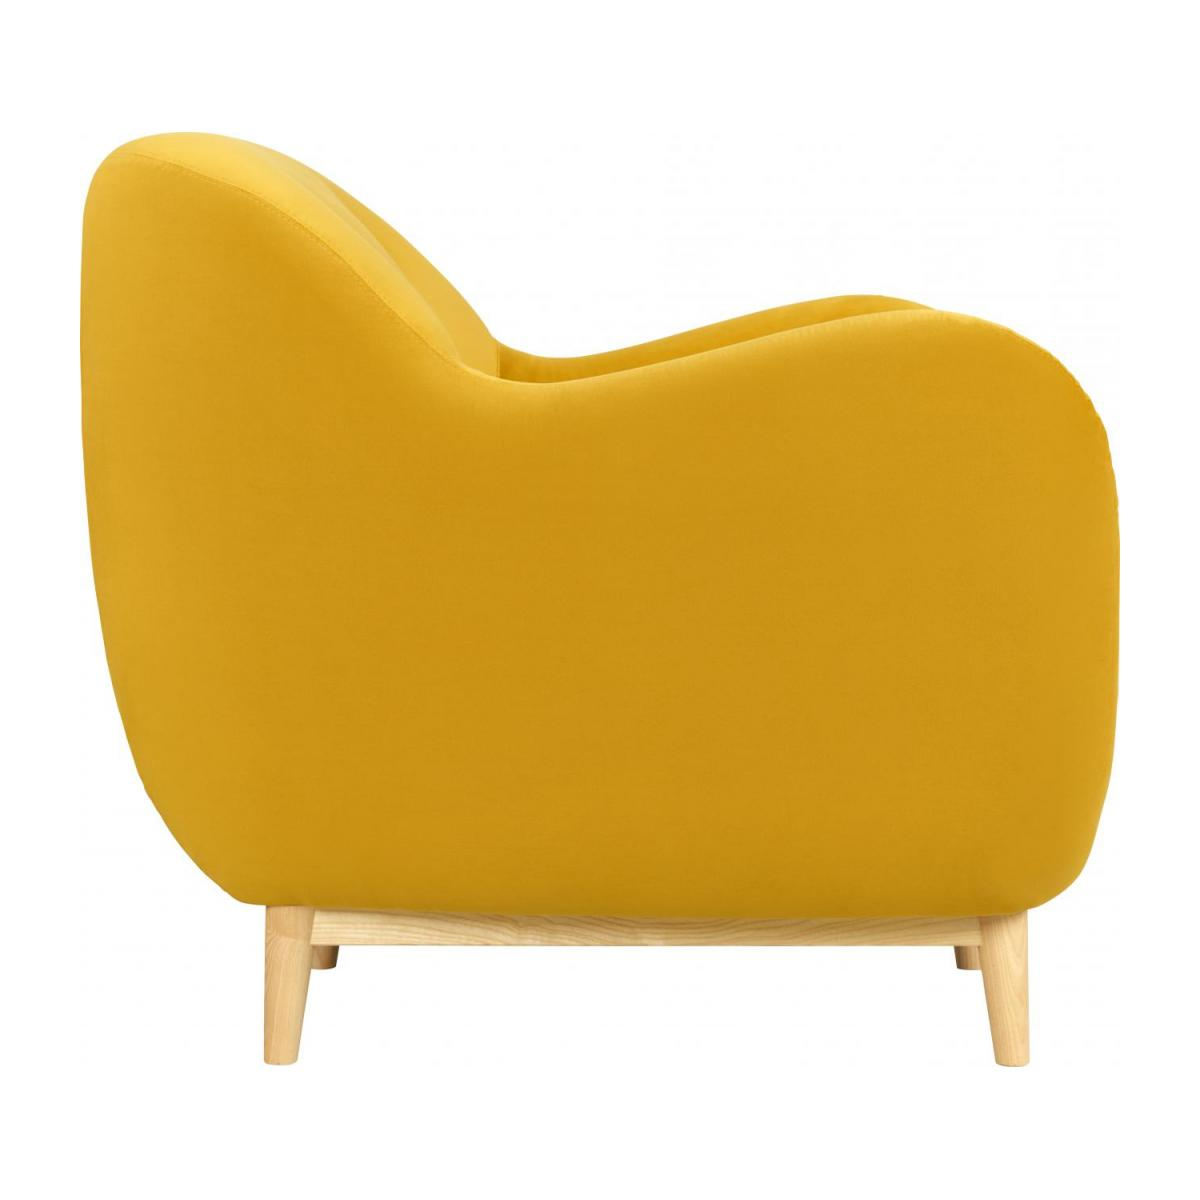 Fauteuil en velours moutarde - Design by Adrien Carvès n°2